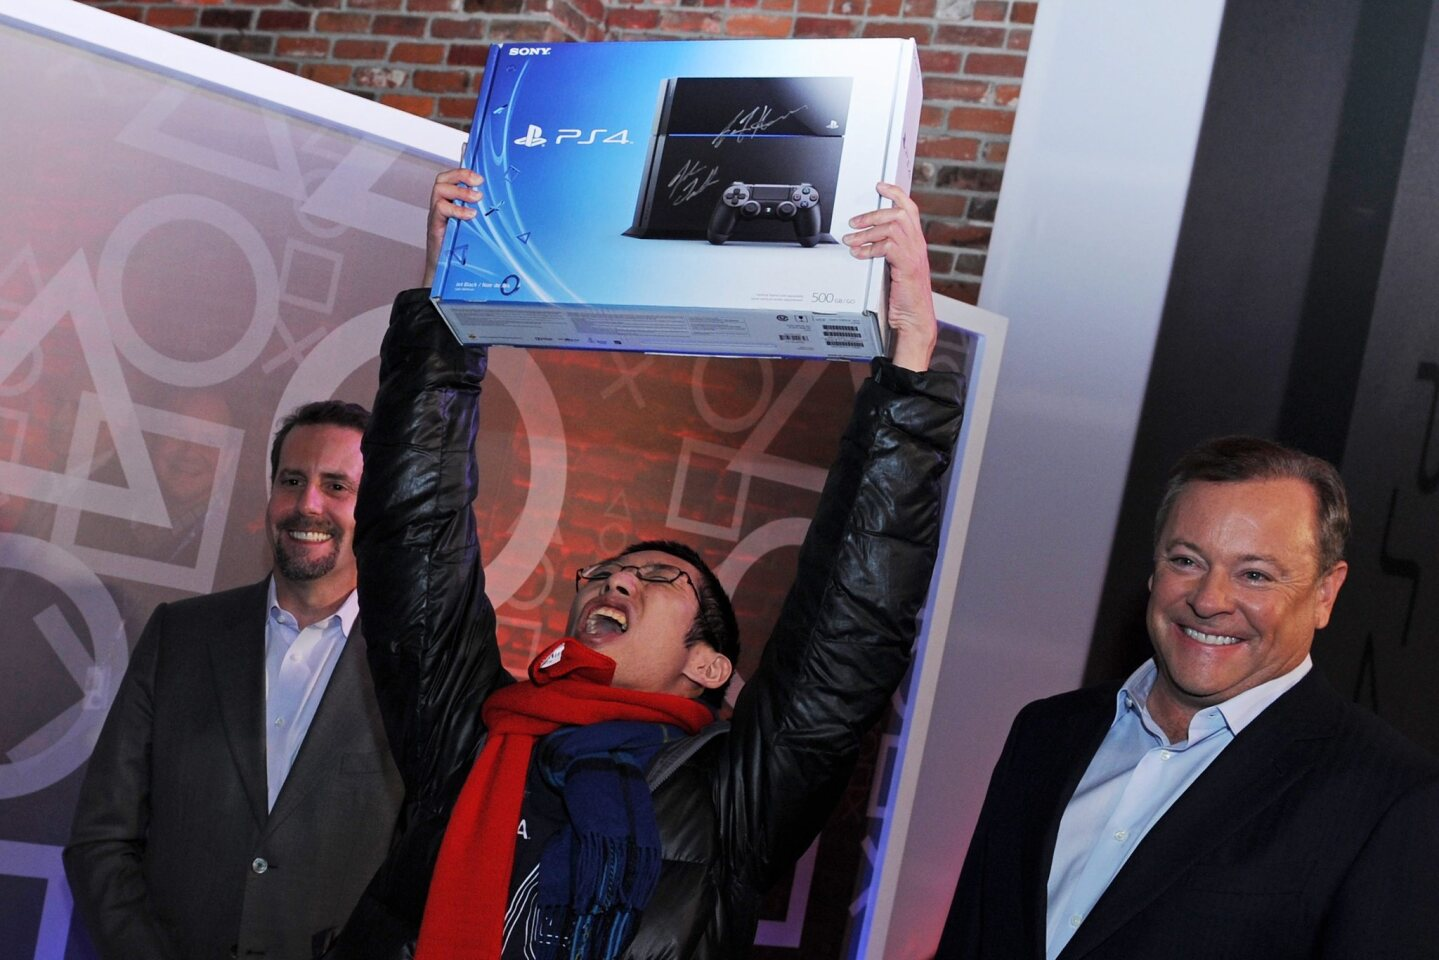 Joey Chiu, a 24-year-old from Brooklyn, is first in line to receive the new Sony PlayStation 4 during the midnight launch.